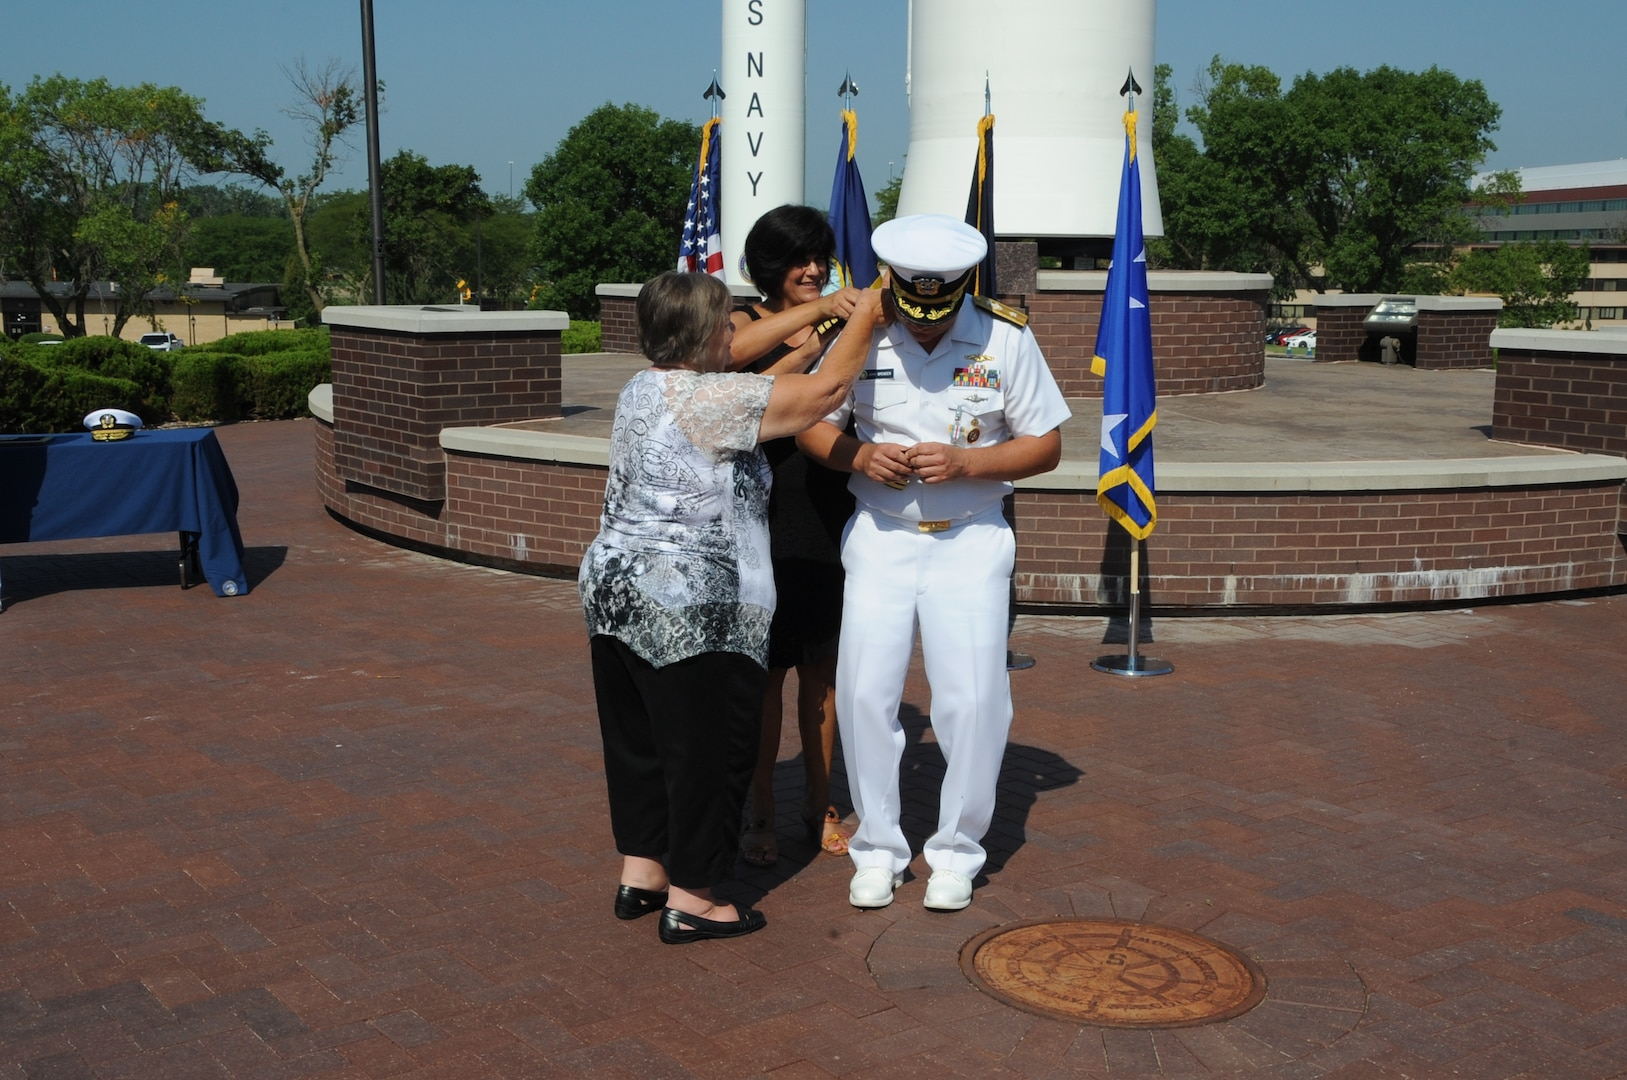 U.S. Navy Rear Adm. John Spencer's wife and his mother pin shoulder boards during his promotion ceremony on the missile deck at U.S. Strategic Command (USSTRATCOM) headquarters on Offutt Air Force Base, Neb., Aug. 9, 2018. Spencer is the executive assistant to U.S. Air Force Gen. John Hyten, commander of USSTRATCOM. His next assignment will be the director of Nuclear Support Directorate, Defense Threat Reduction Agency at Ft. Belvoir, Va.  USSTRATCOM has global responsibilities assigned through the Unified Command Plan that include strategic deterrence, nuclear operations, space operations, joint electromagnetic spectrum operations, global strike, missile defense, and analysis and targeting.